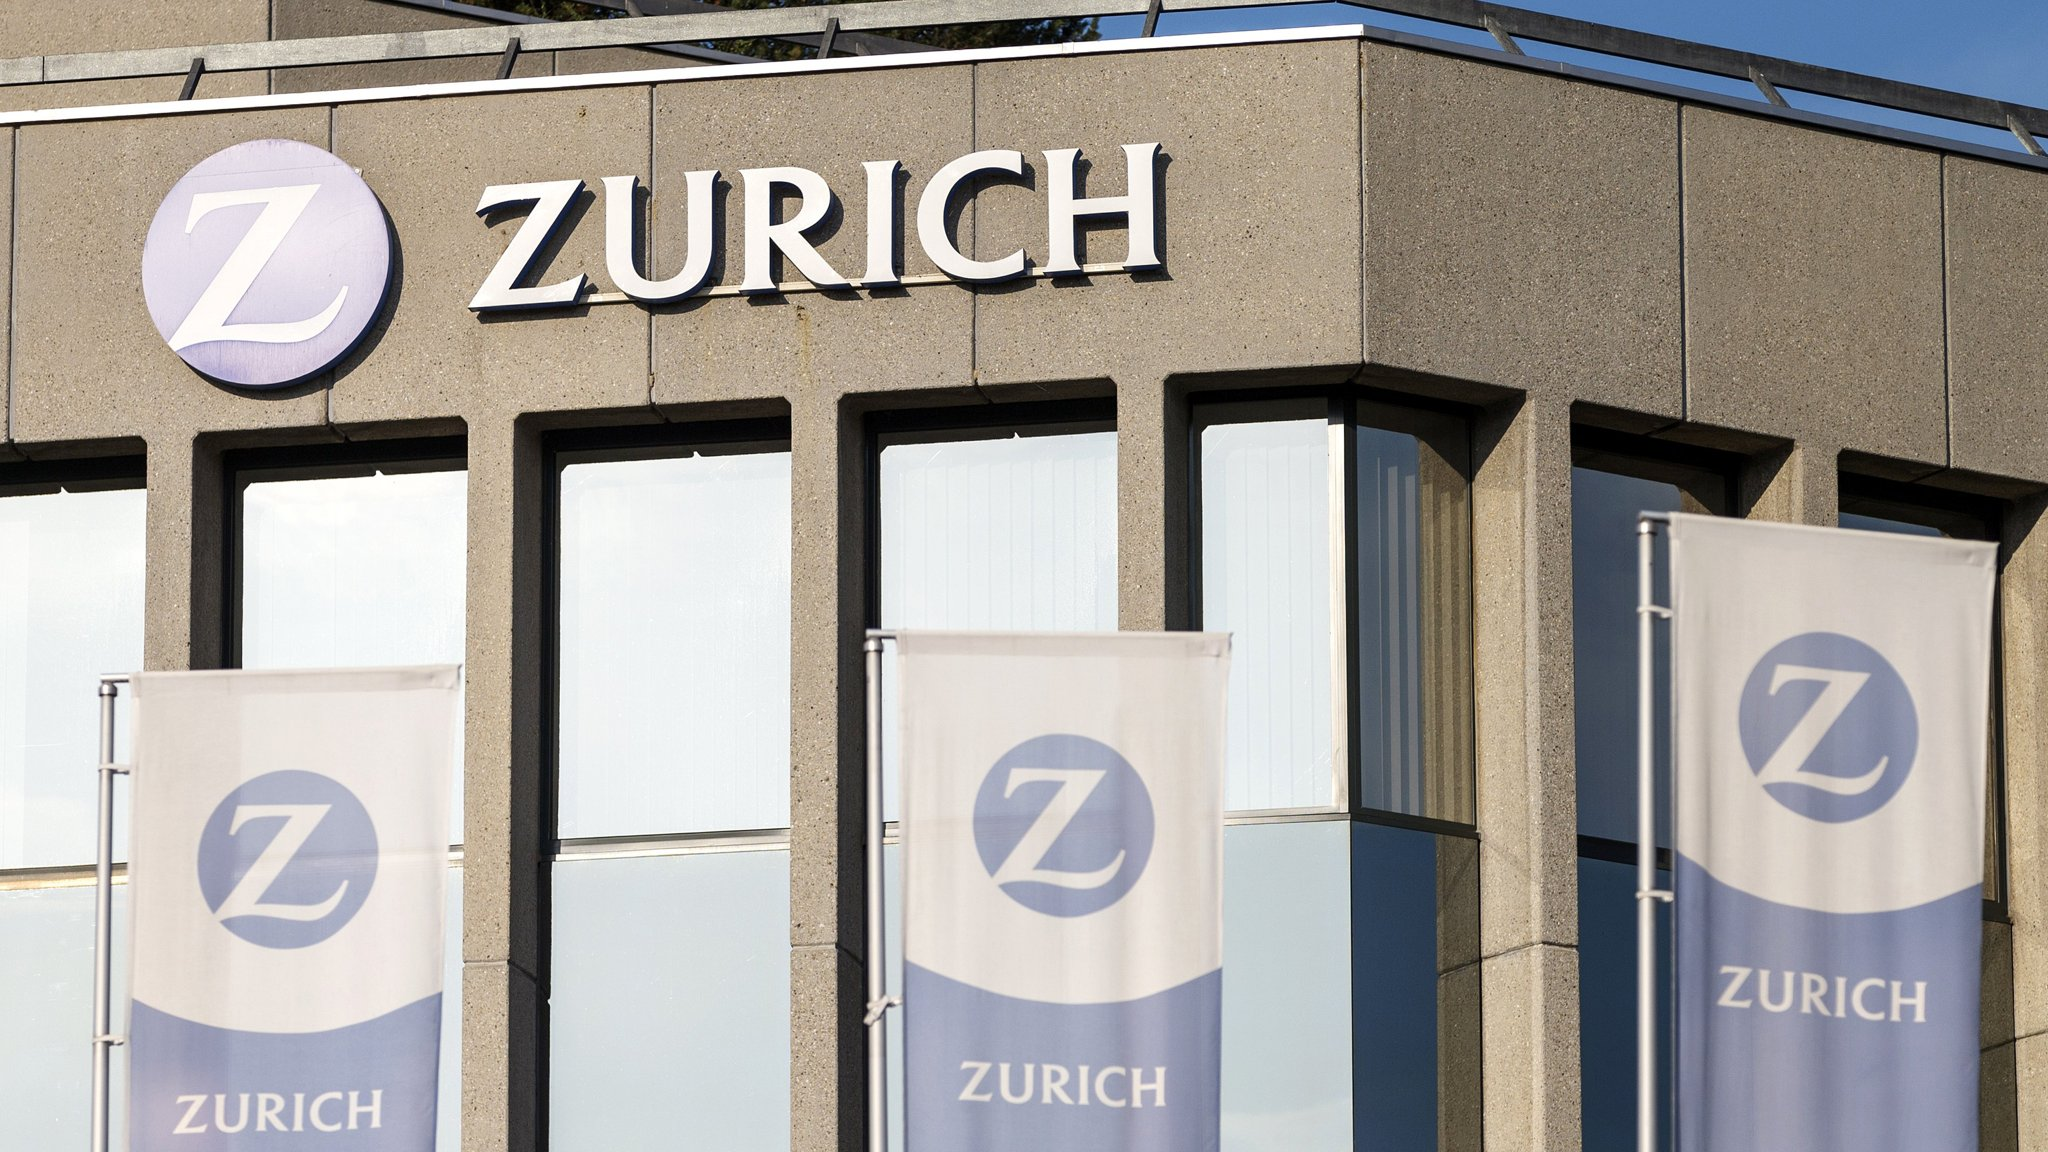 Zurich Life Insurance Quote Zurich Insurance Shuffles Executives To Fill Leadership Roles